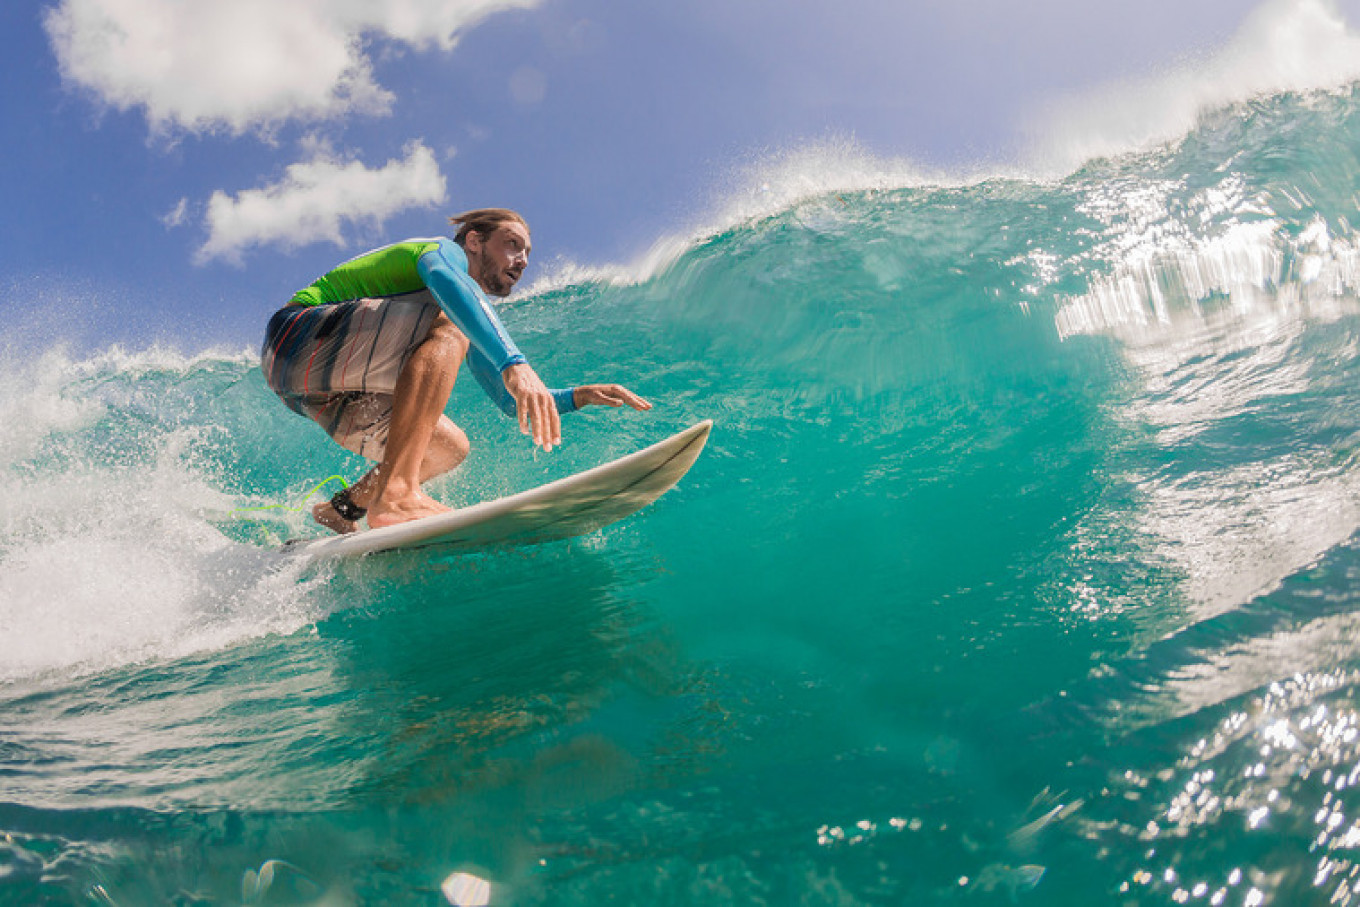 Competitive surfer Yevgeny Isakov says it will take several generations for surfers to be seen as professional athletes in Russia. Courtesy of Yevgeny Isakov